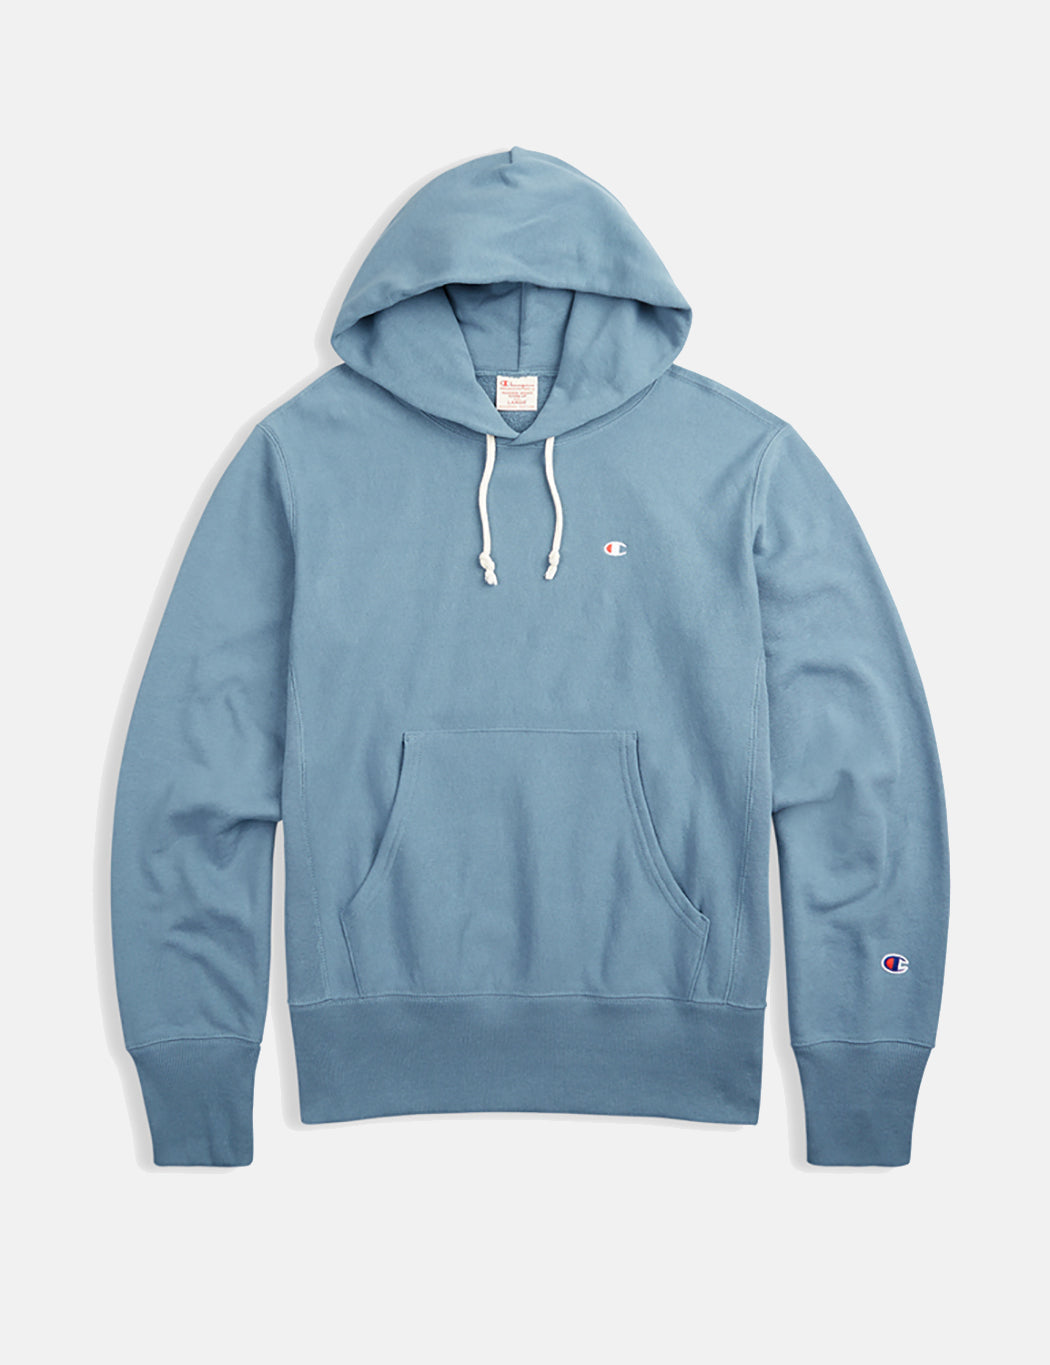 Champion Reverse Weave Hooded Sweatshirt - Petrol Blue